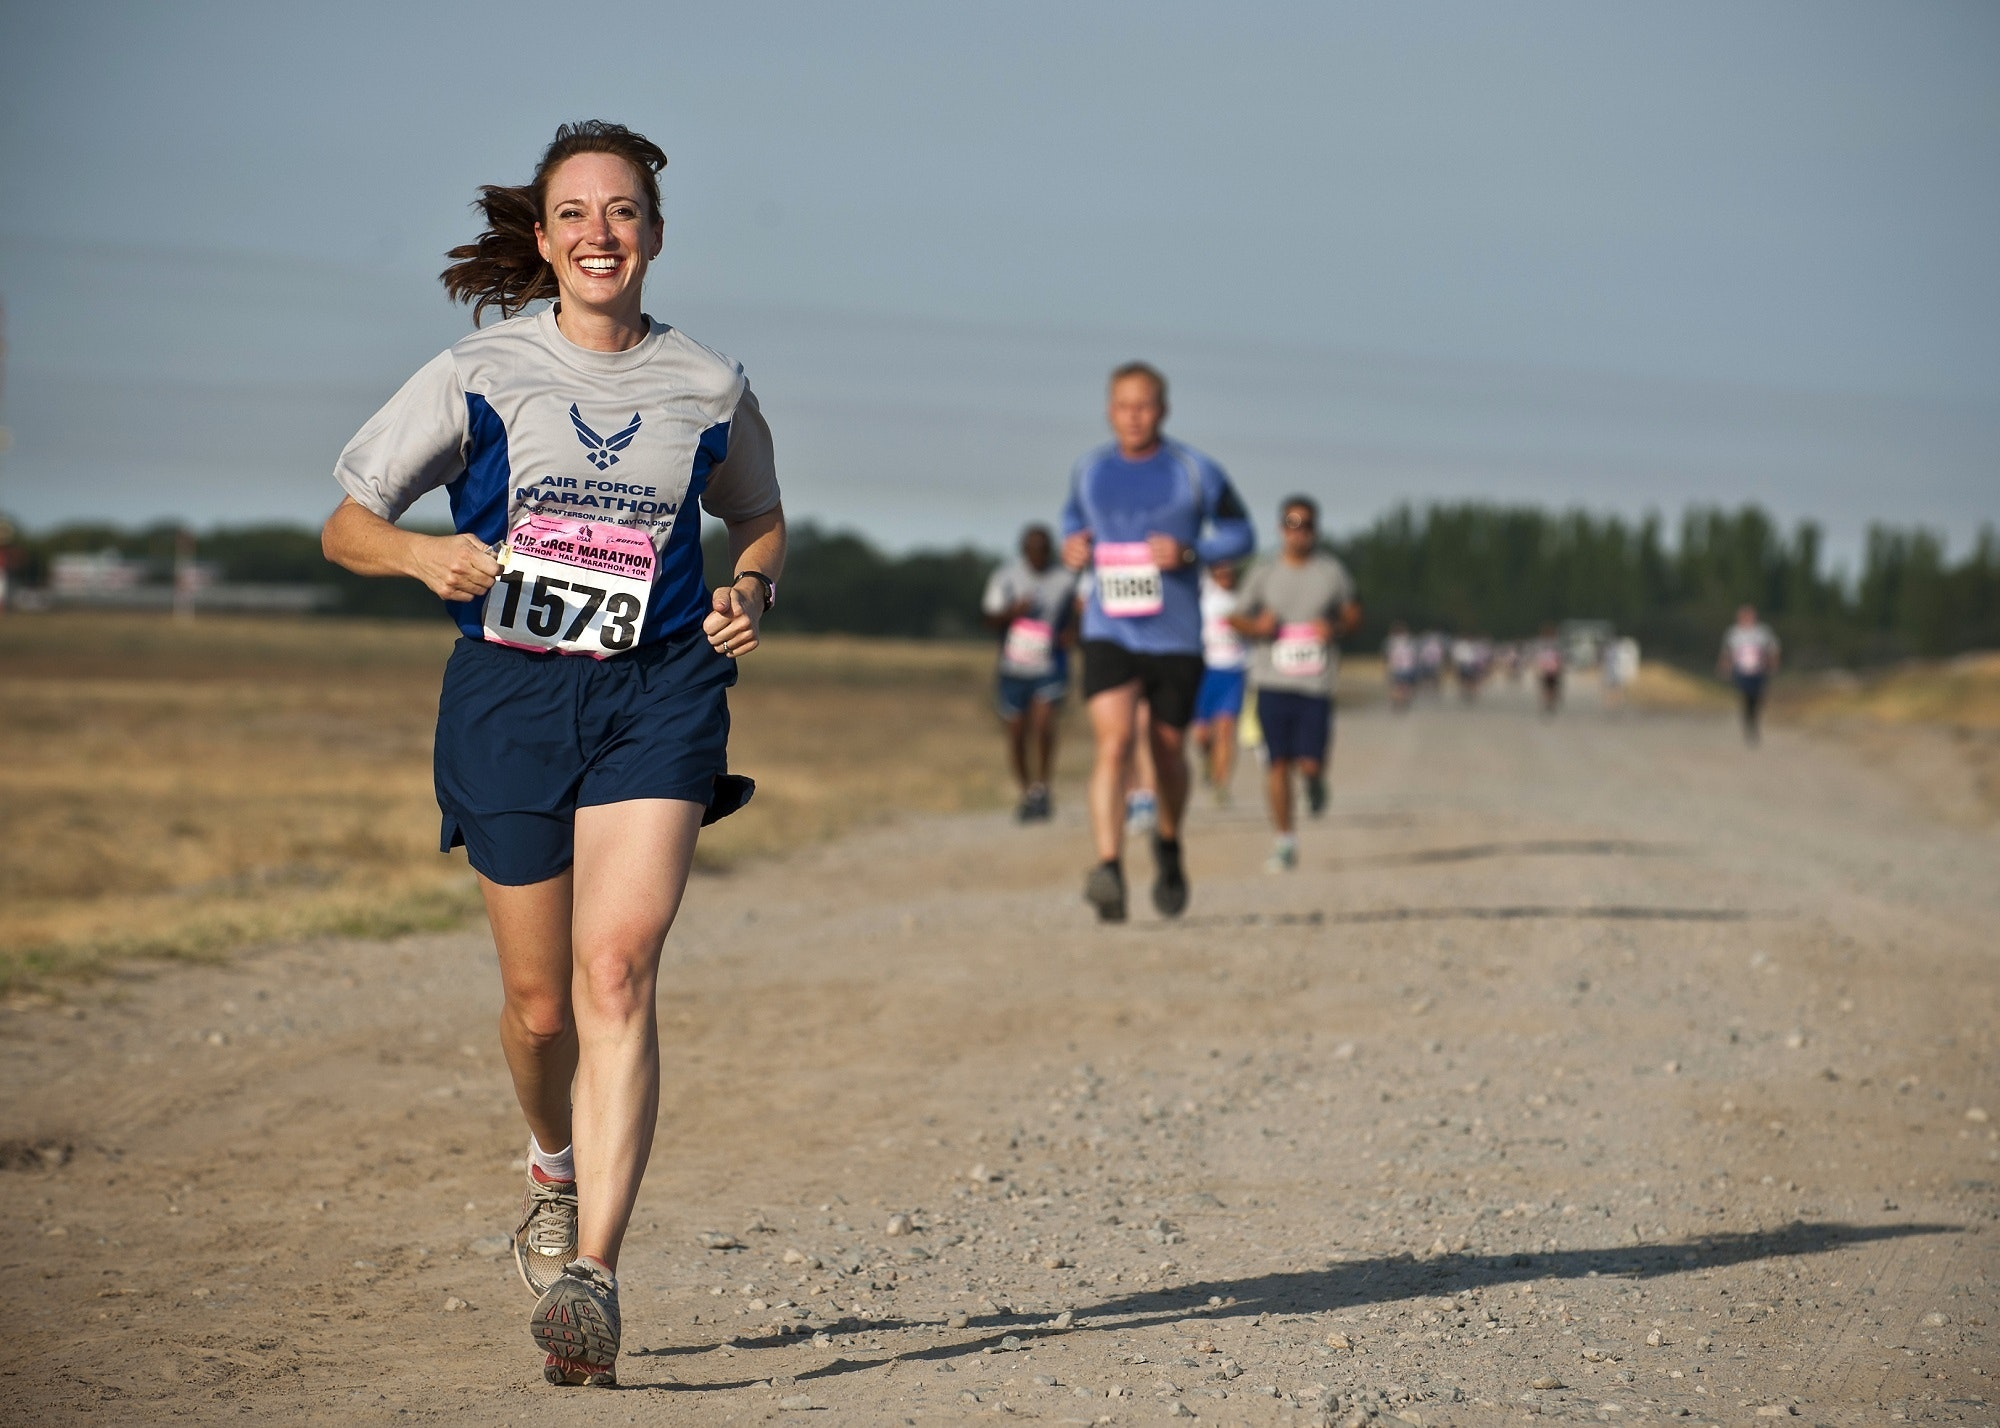 woman-in-gray-crew-neck-shirt-running-on-brown-soil-during-34495